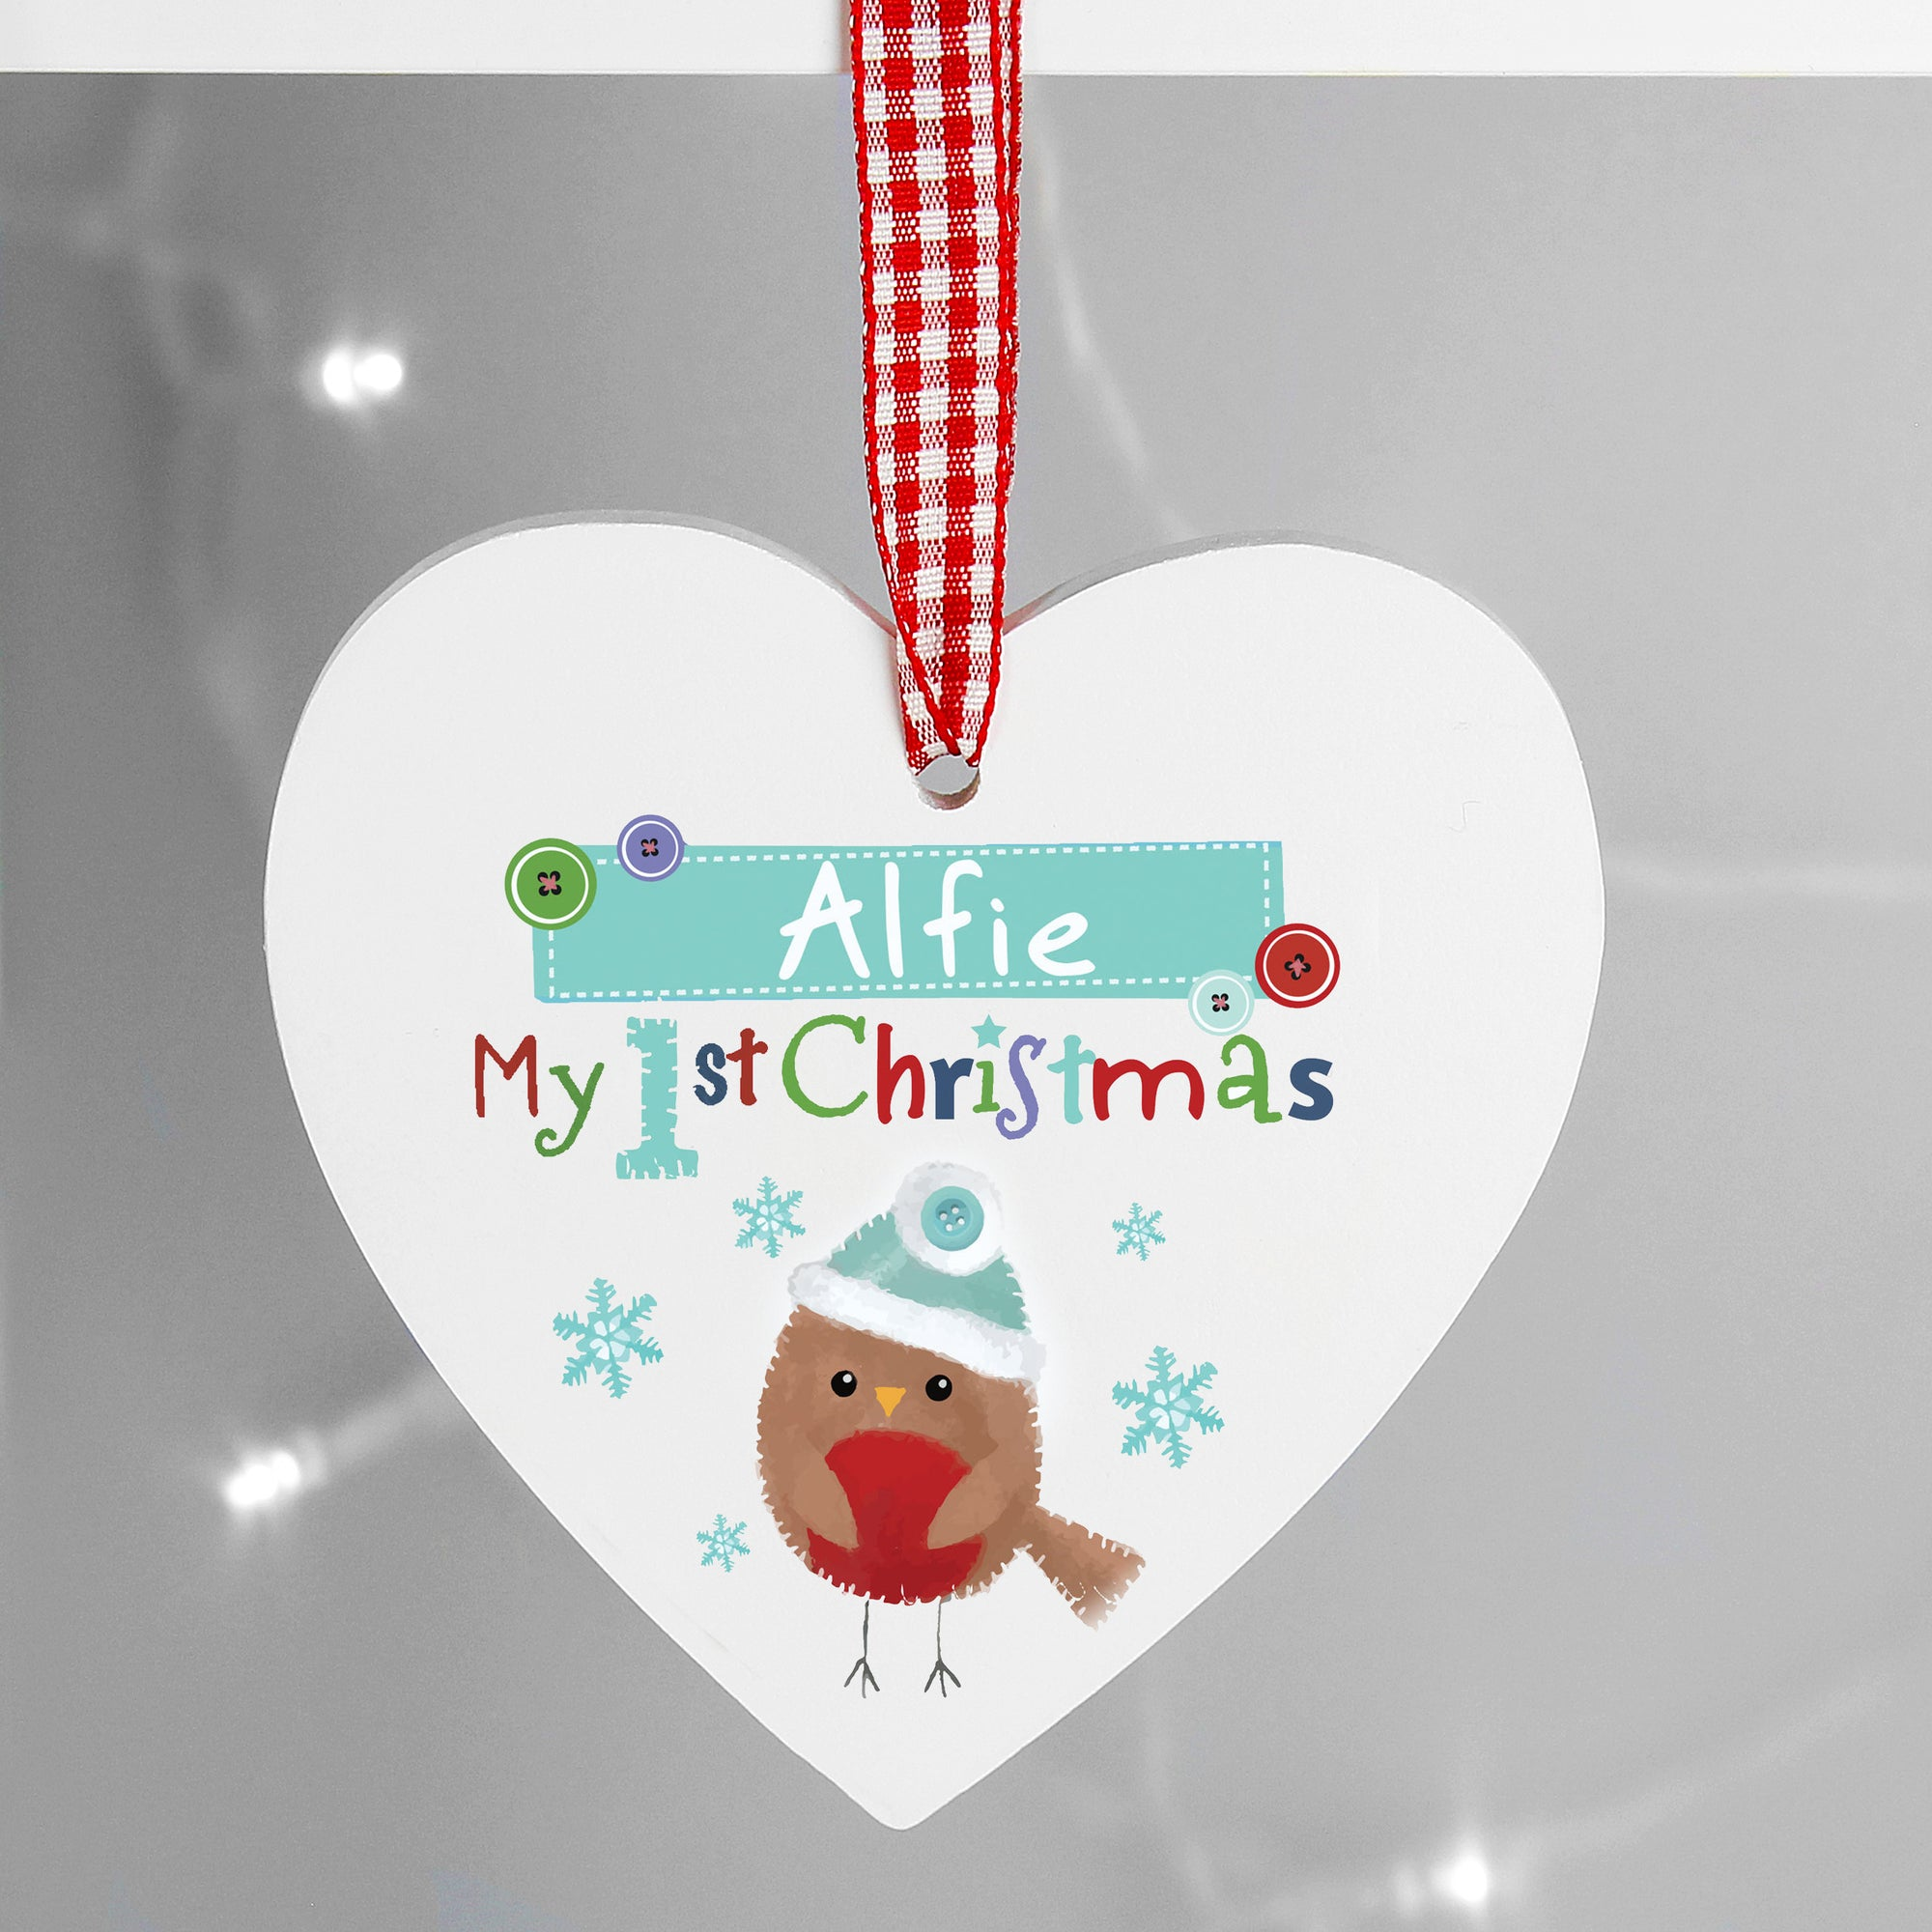 Personalised white wooden heart shaped Christmas decoration featuring an image of a hand-painted robin and the text 'My 1st Christmas' in bright letters.  The decoration can be personalised with a name of your choice up to 12 characters.